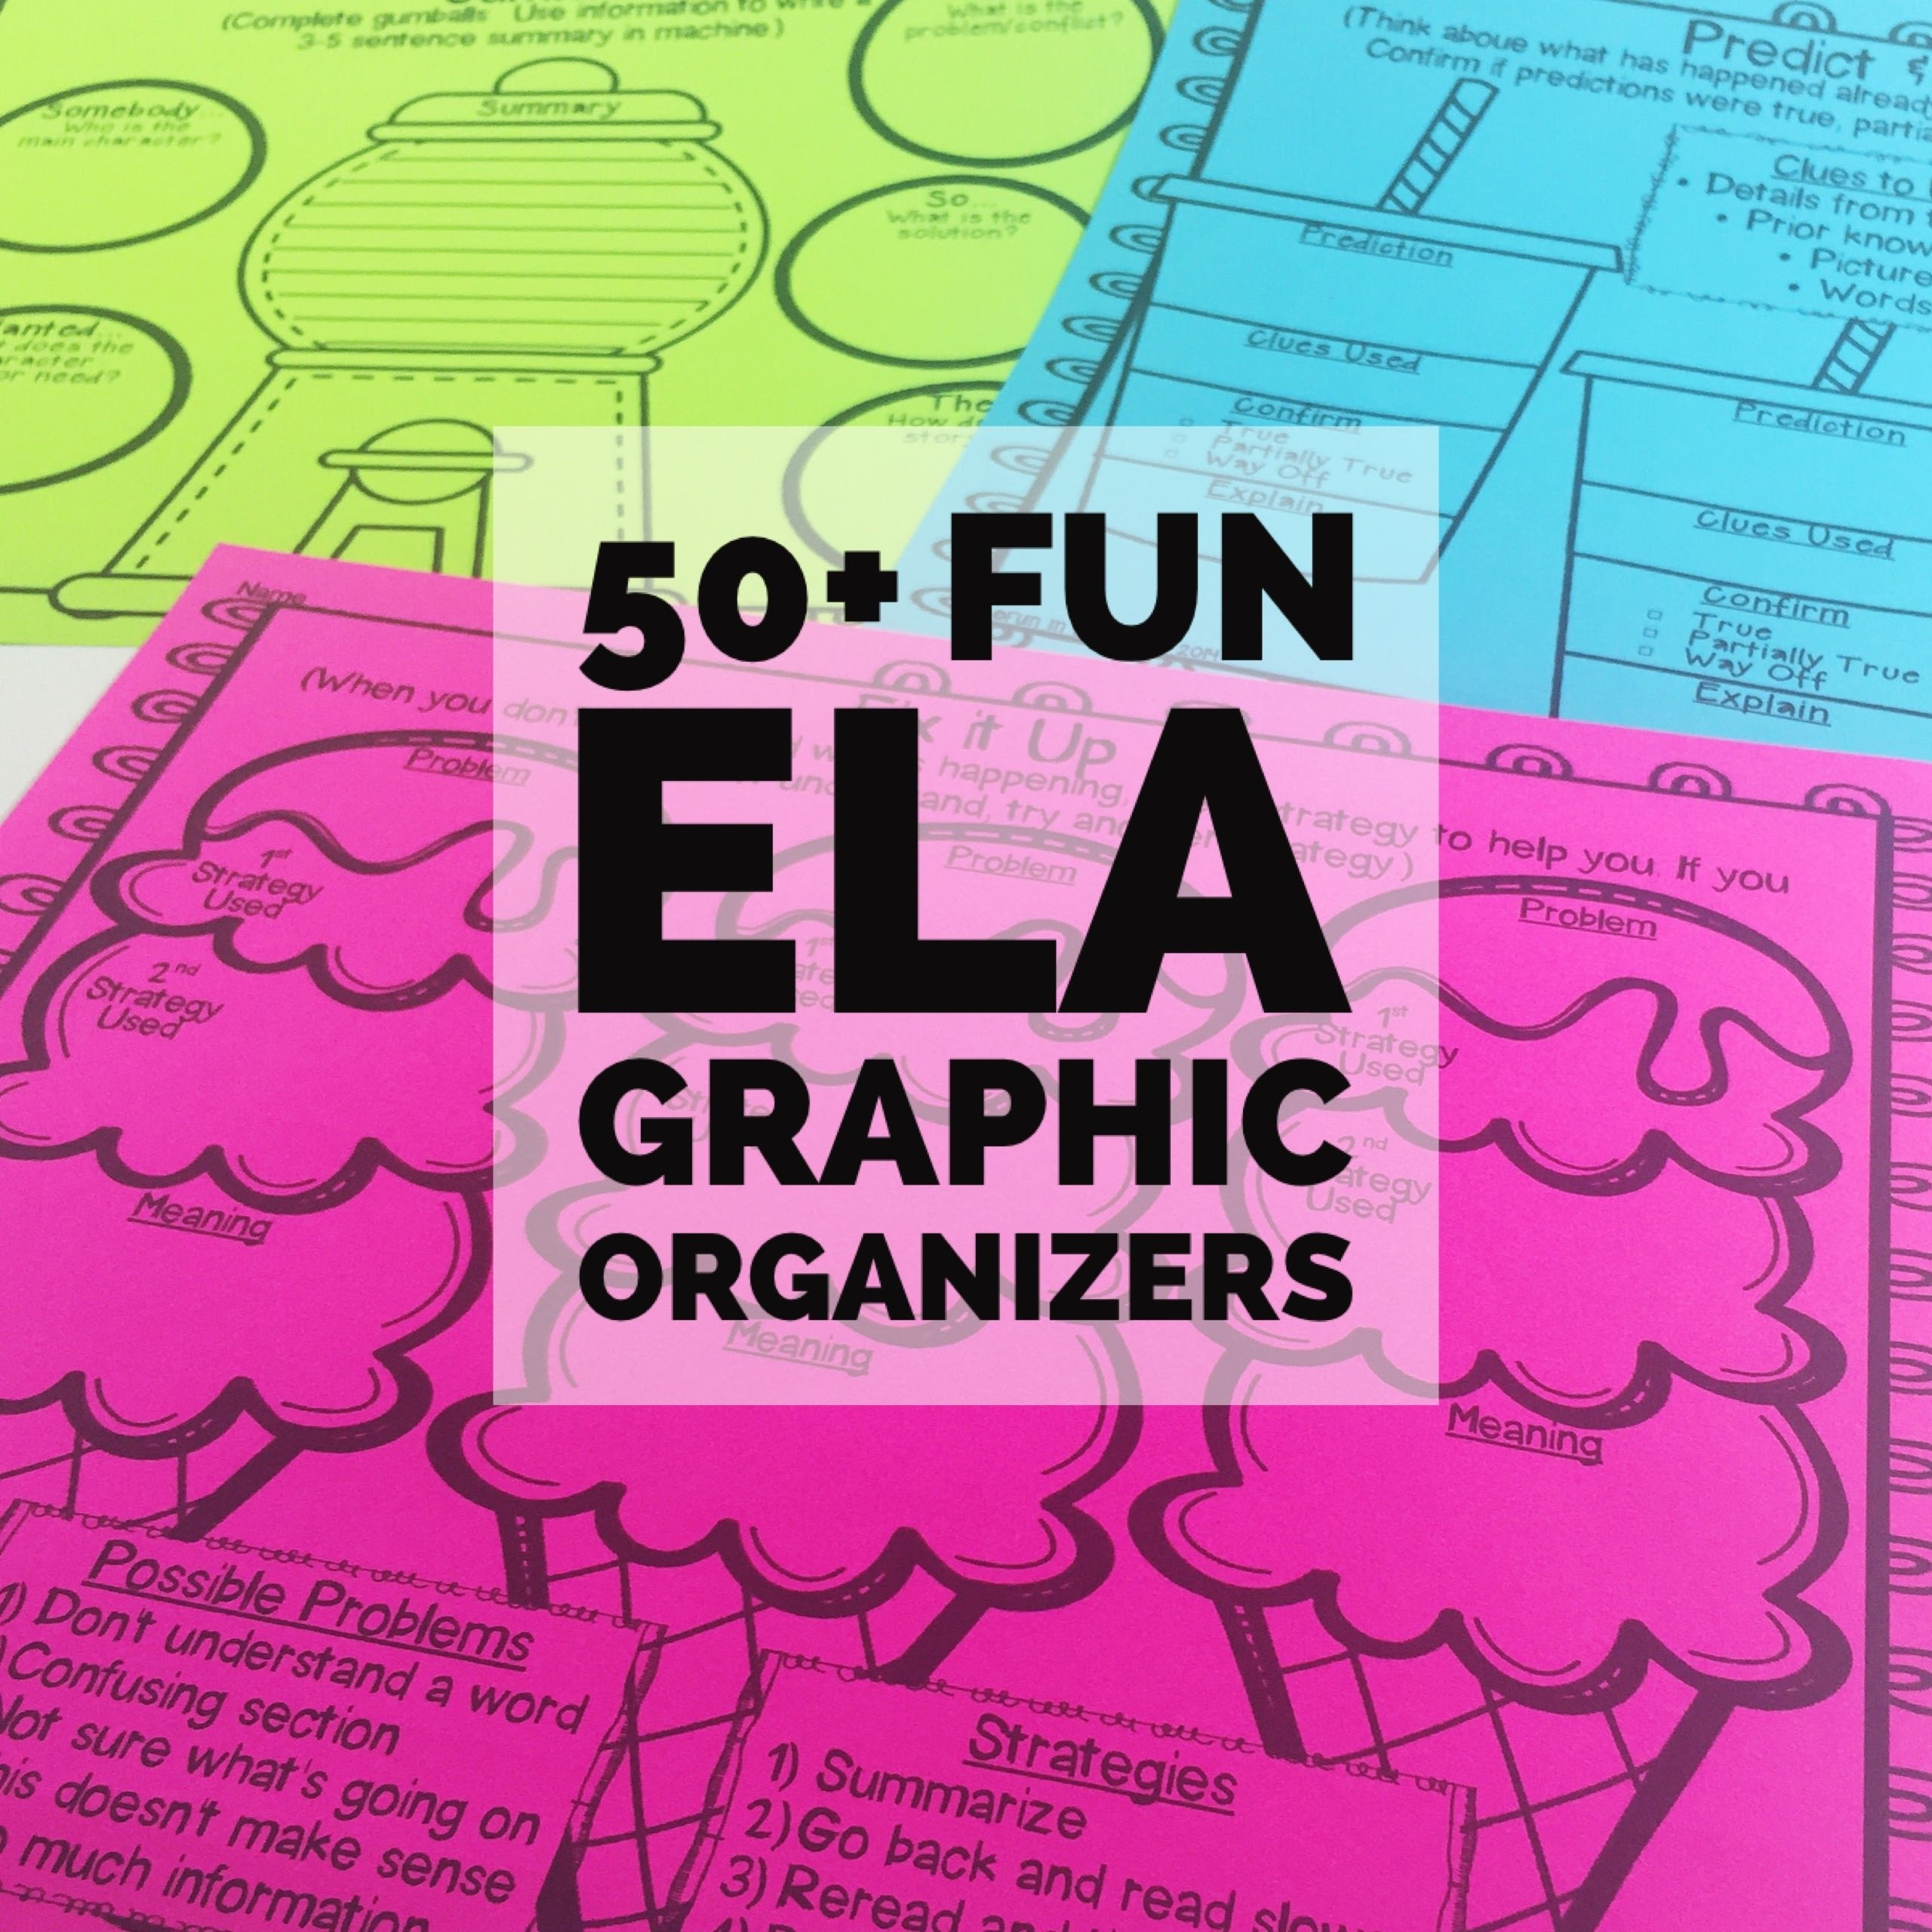 Graphic Organizers in a Fun Food Theme 00023